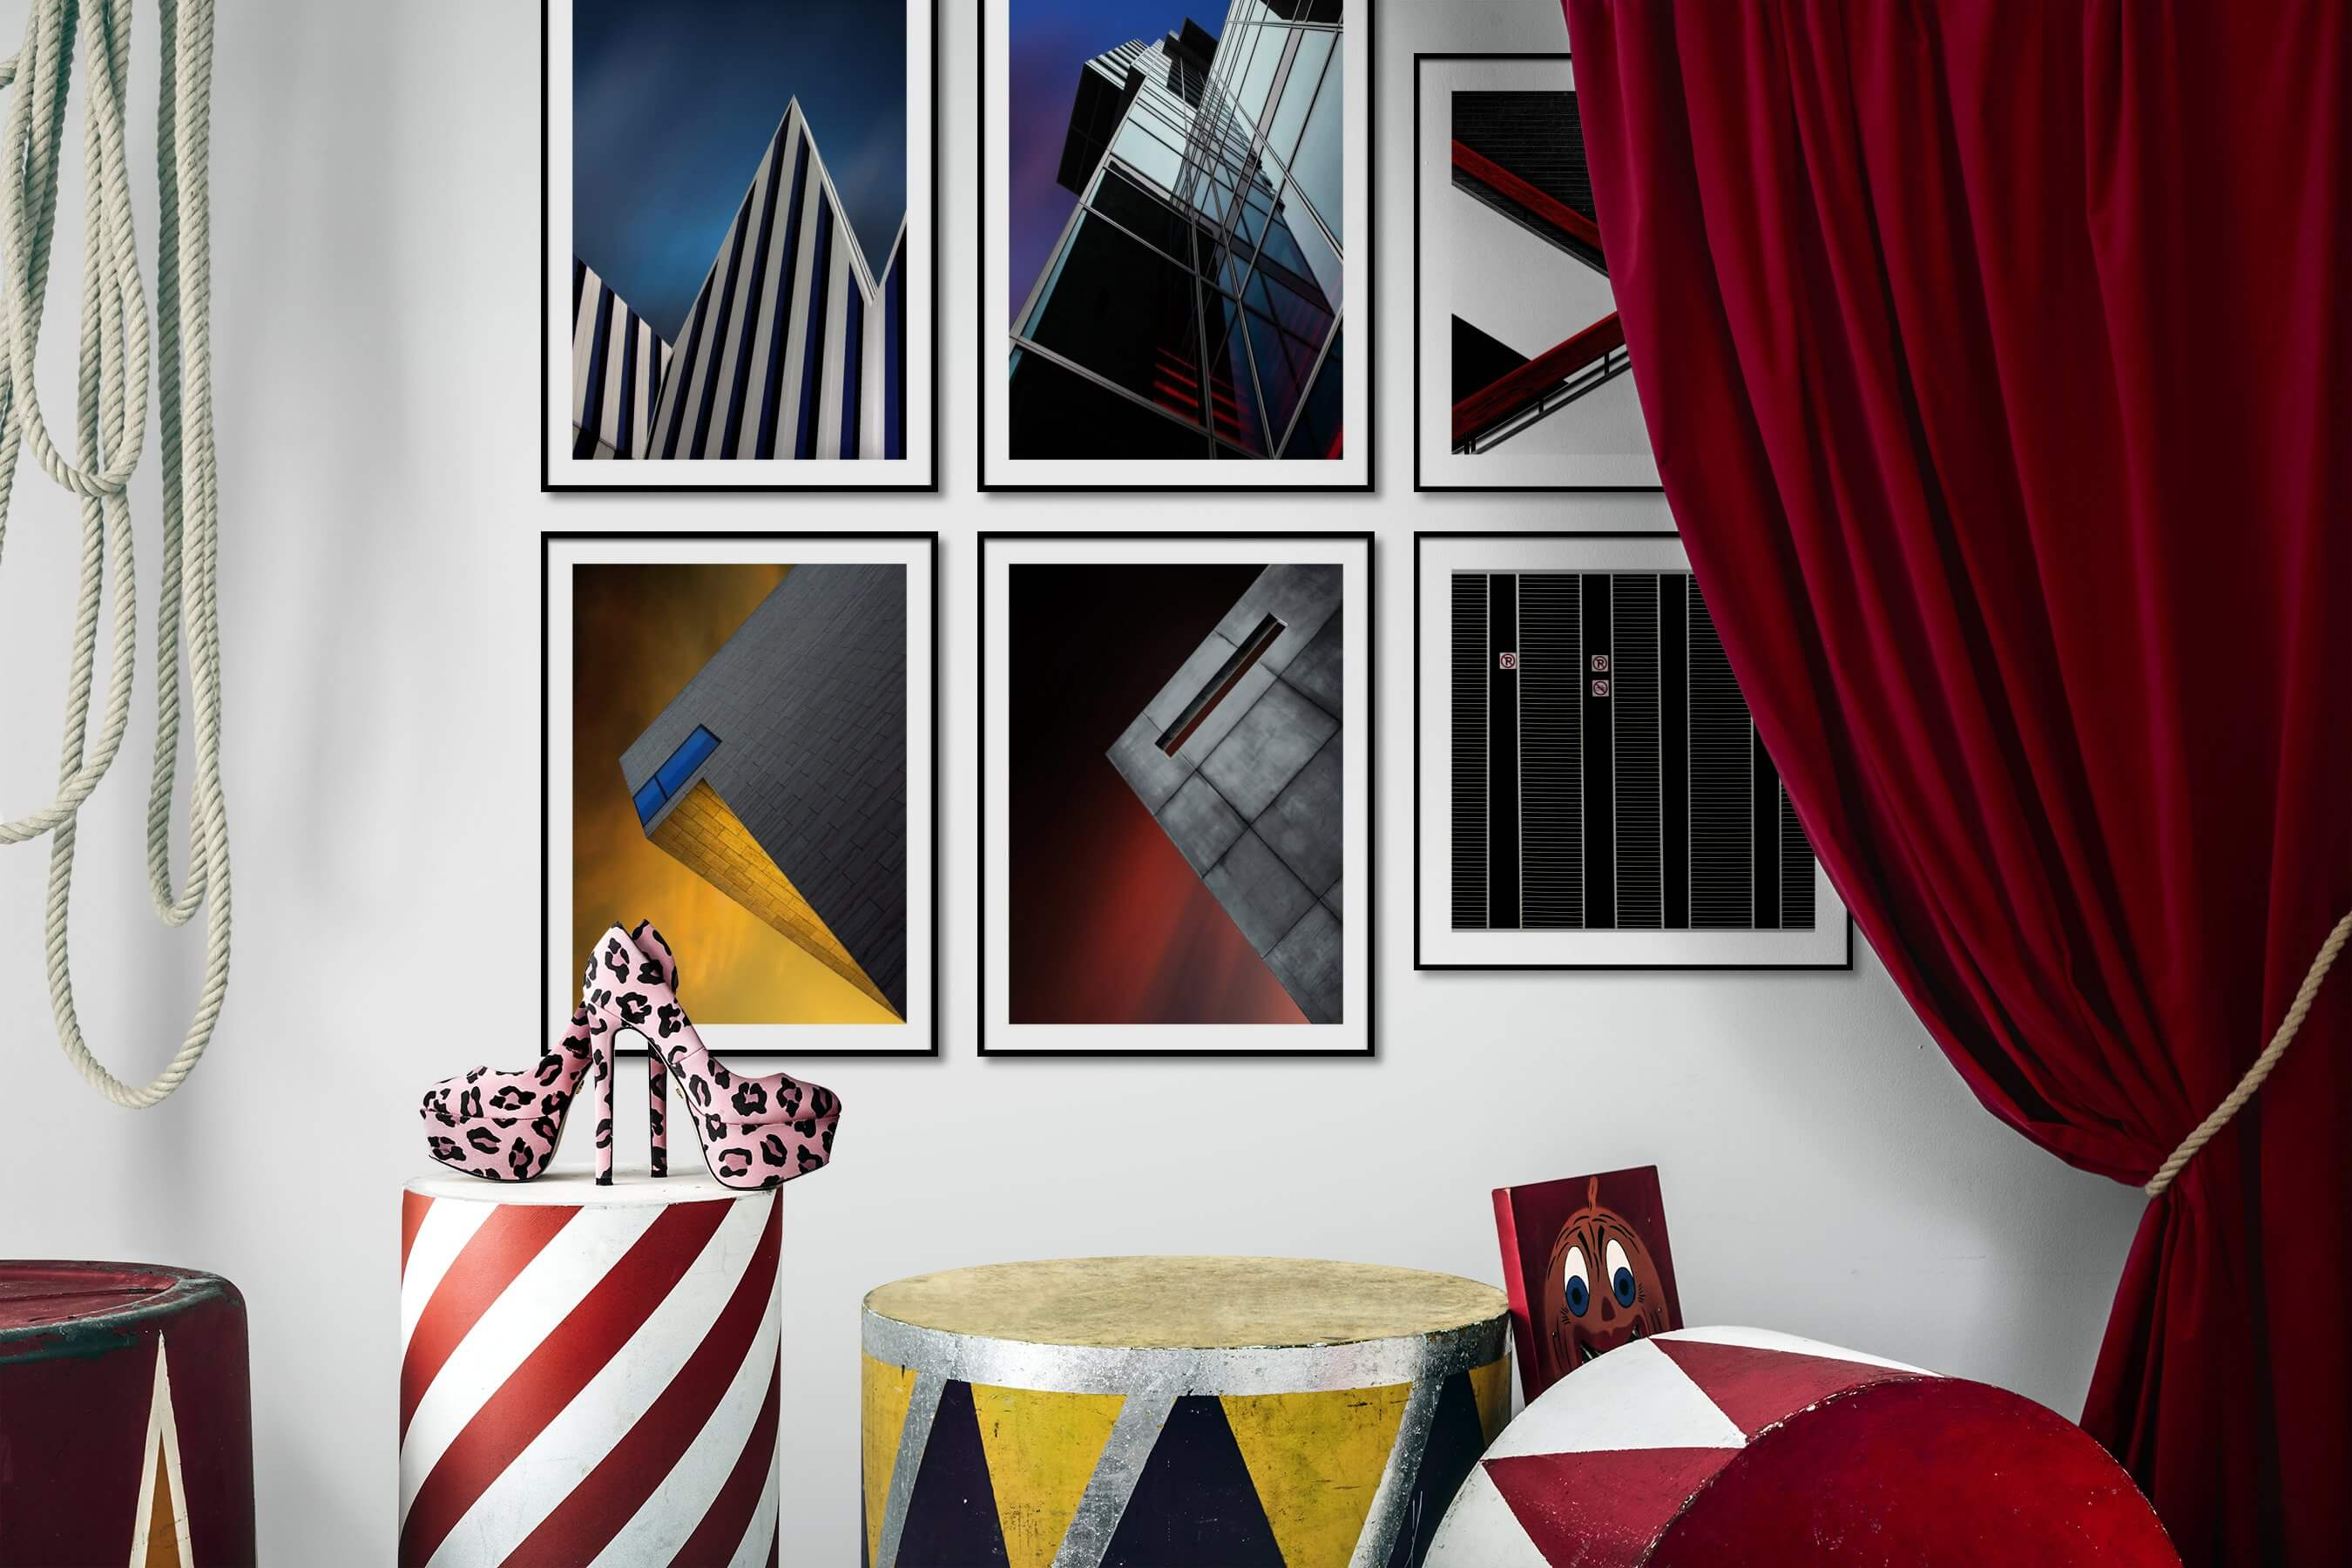 Gallery wall idea with six framed pictures arranged on a wall depicting For the Minimalist, For the Maximalist, and For the Moderate